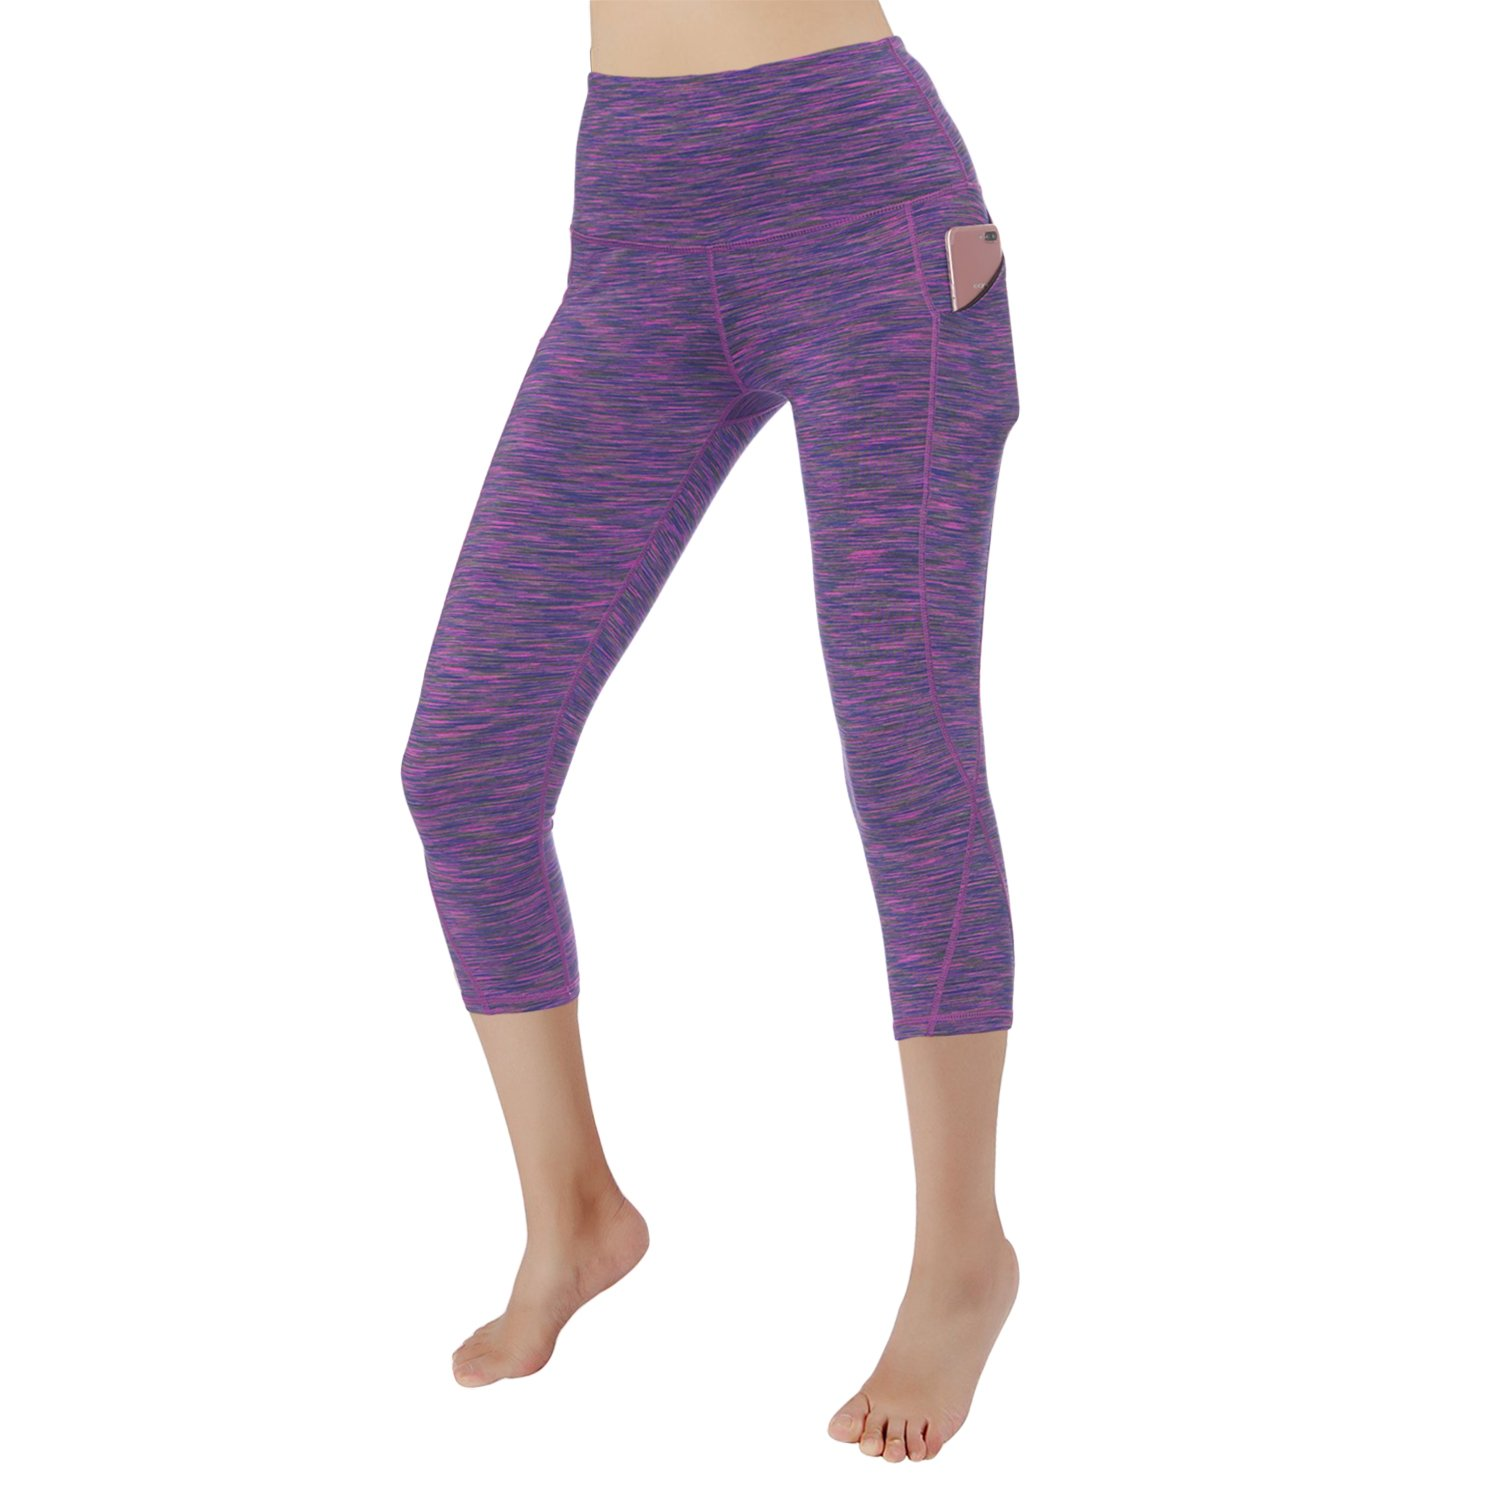 Purple Grey RURING Women's High Waist Yoga Pants Tummy Control 4 Way Stretch Running Pants Workout Leggings